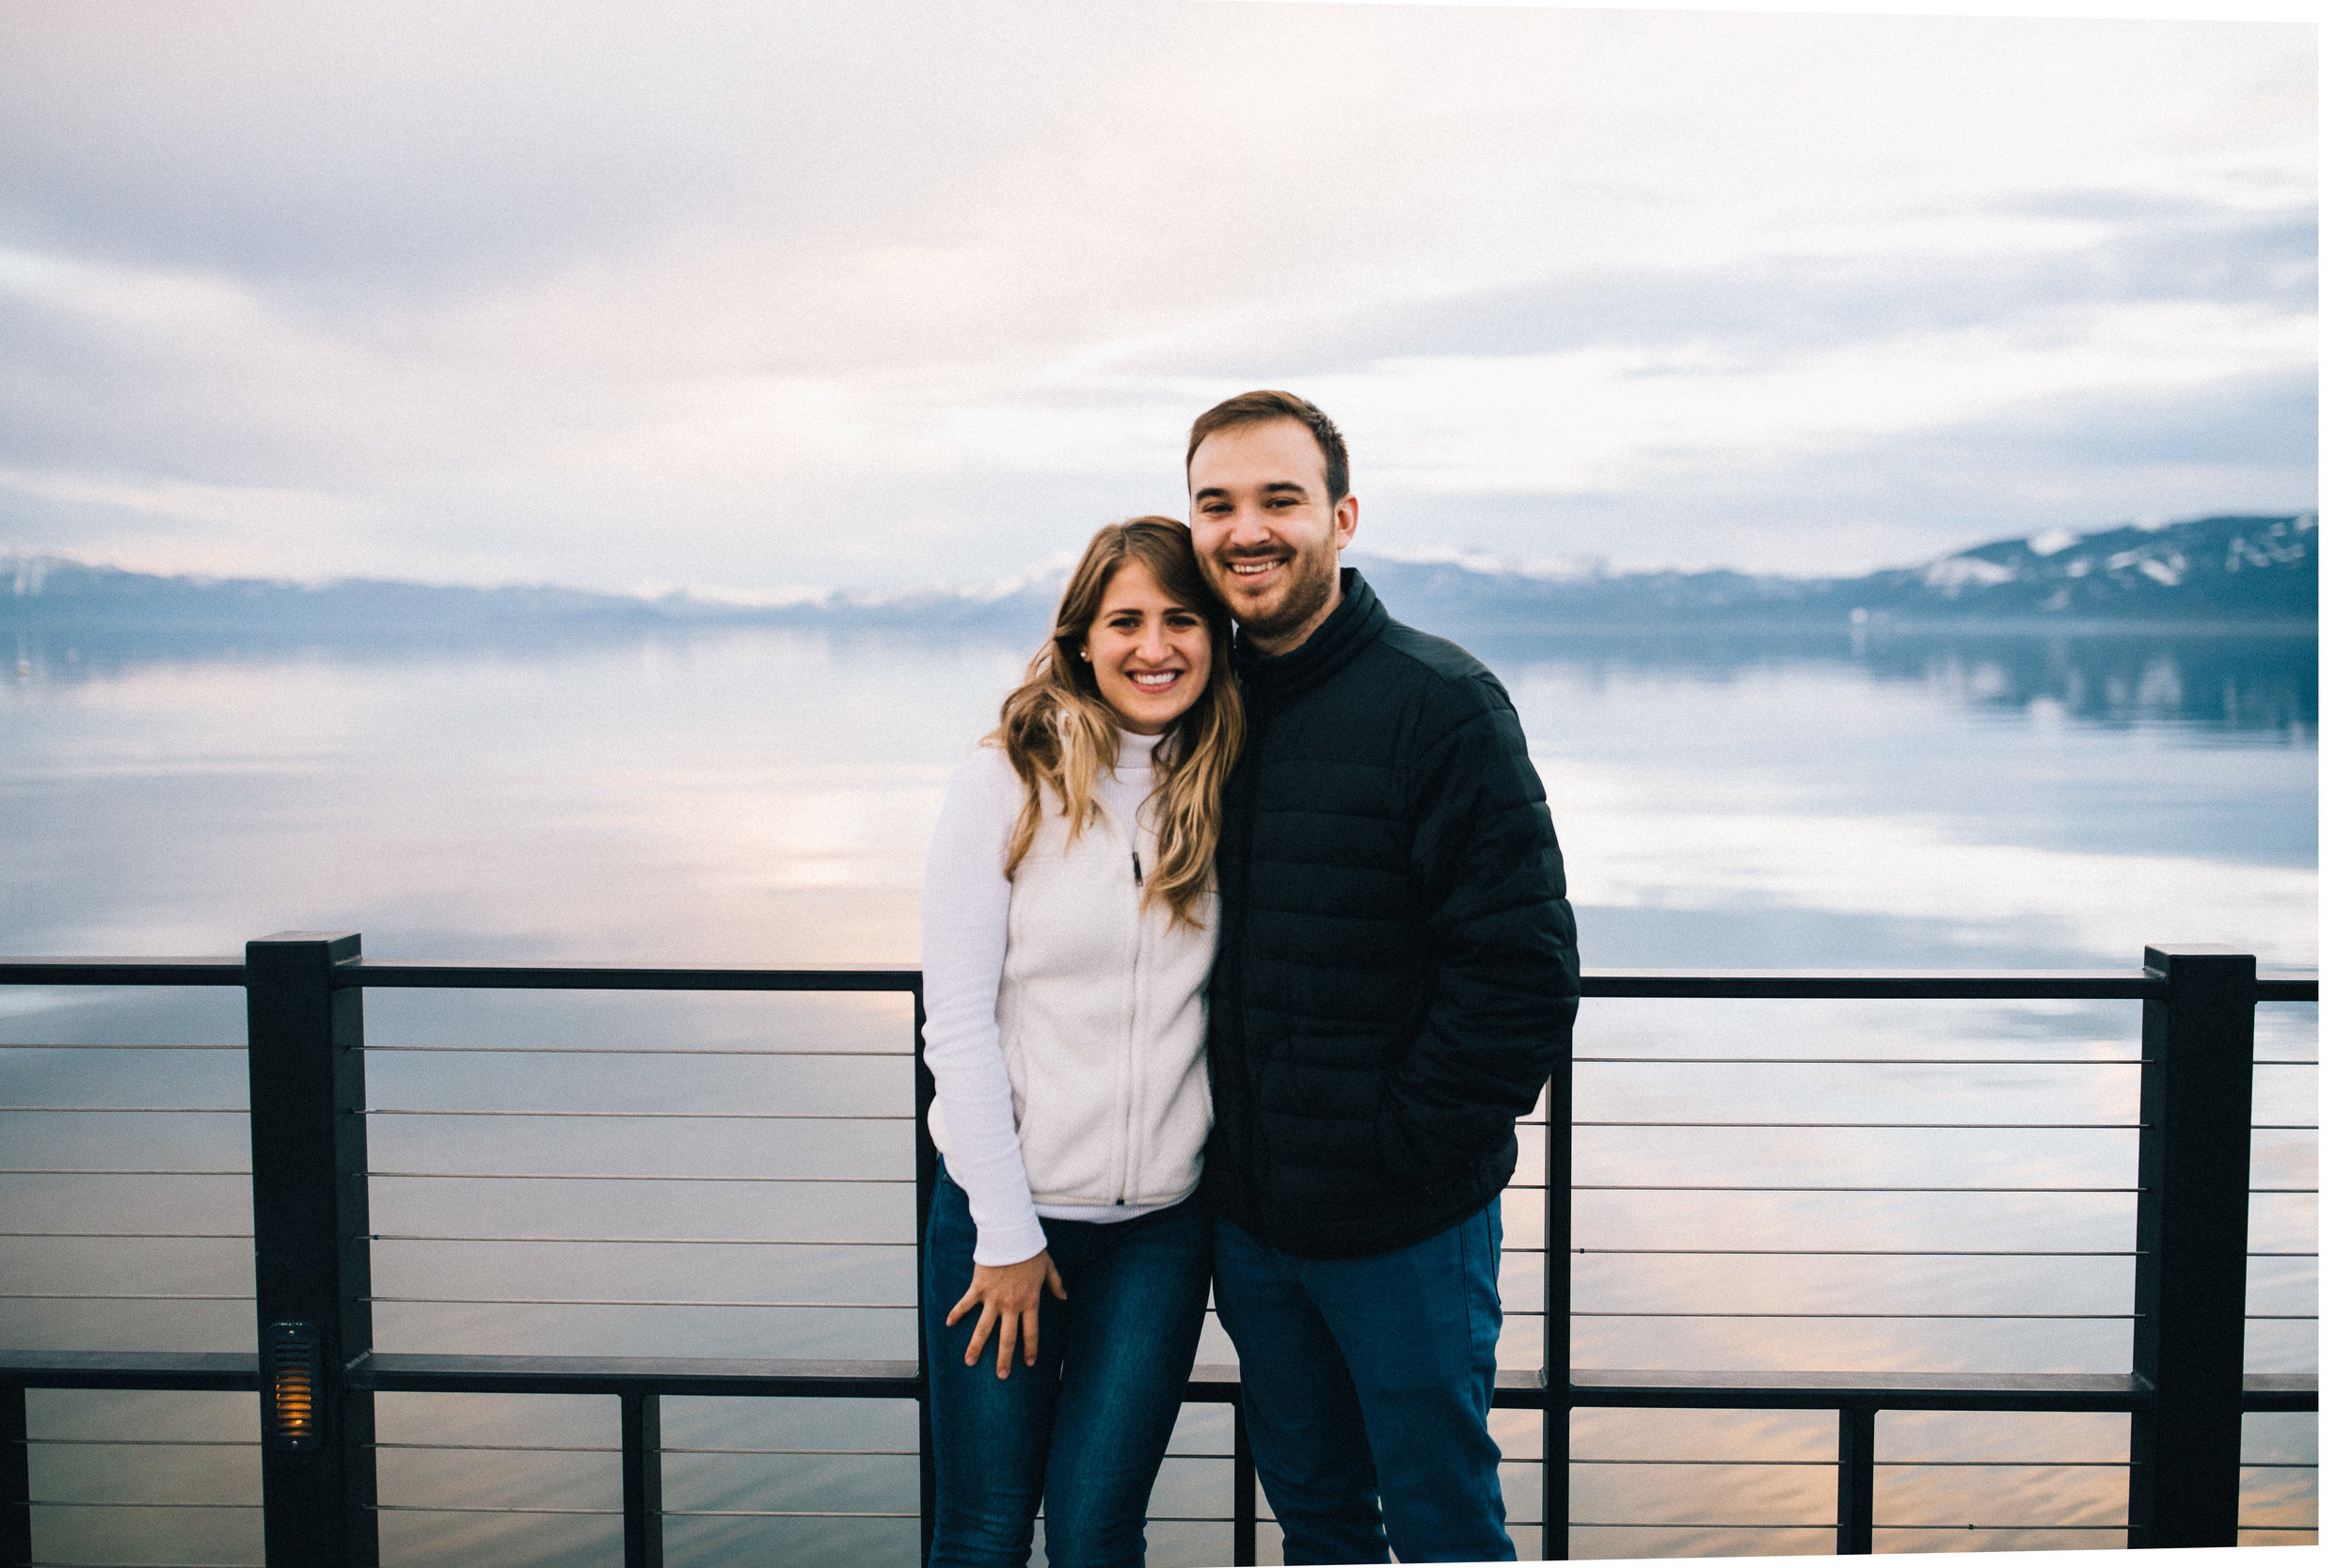 2018_01_01 Tahoe Trip 2018 Edited Full Resolution 0072.jpg